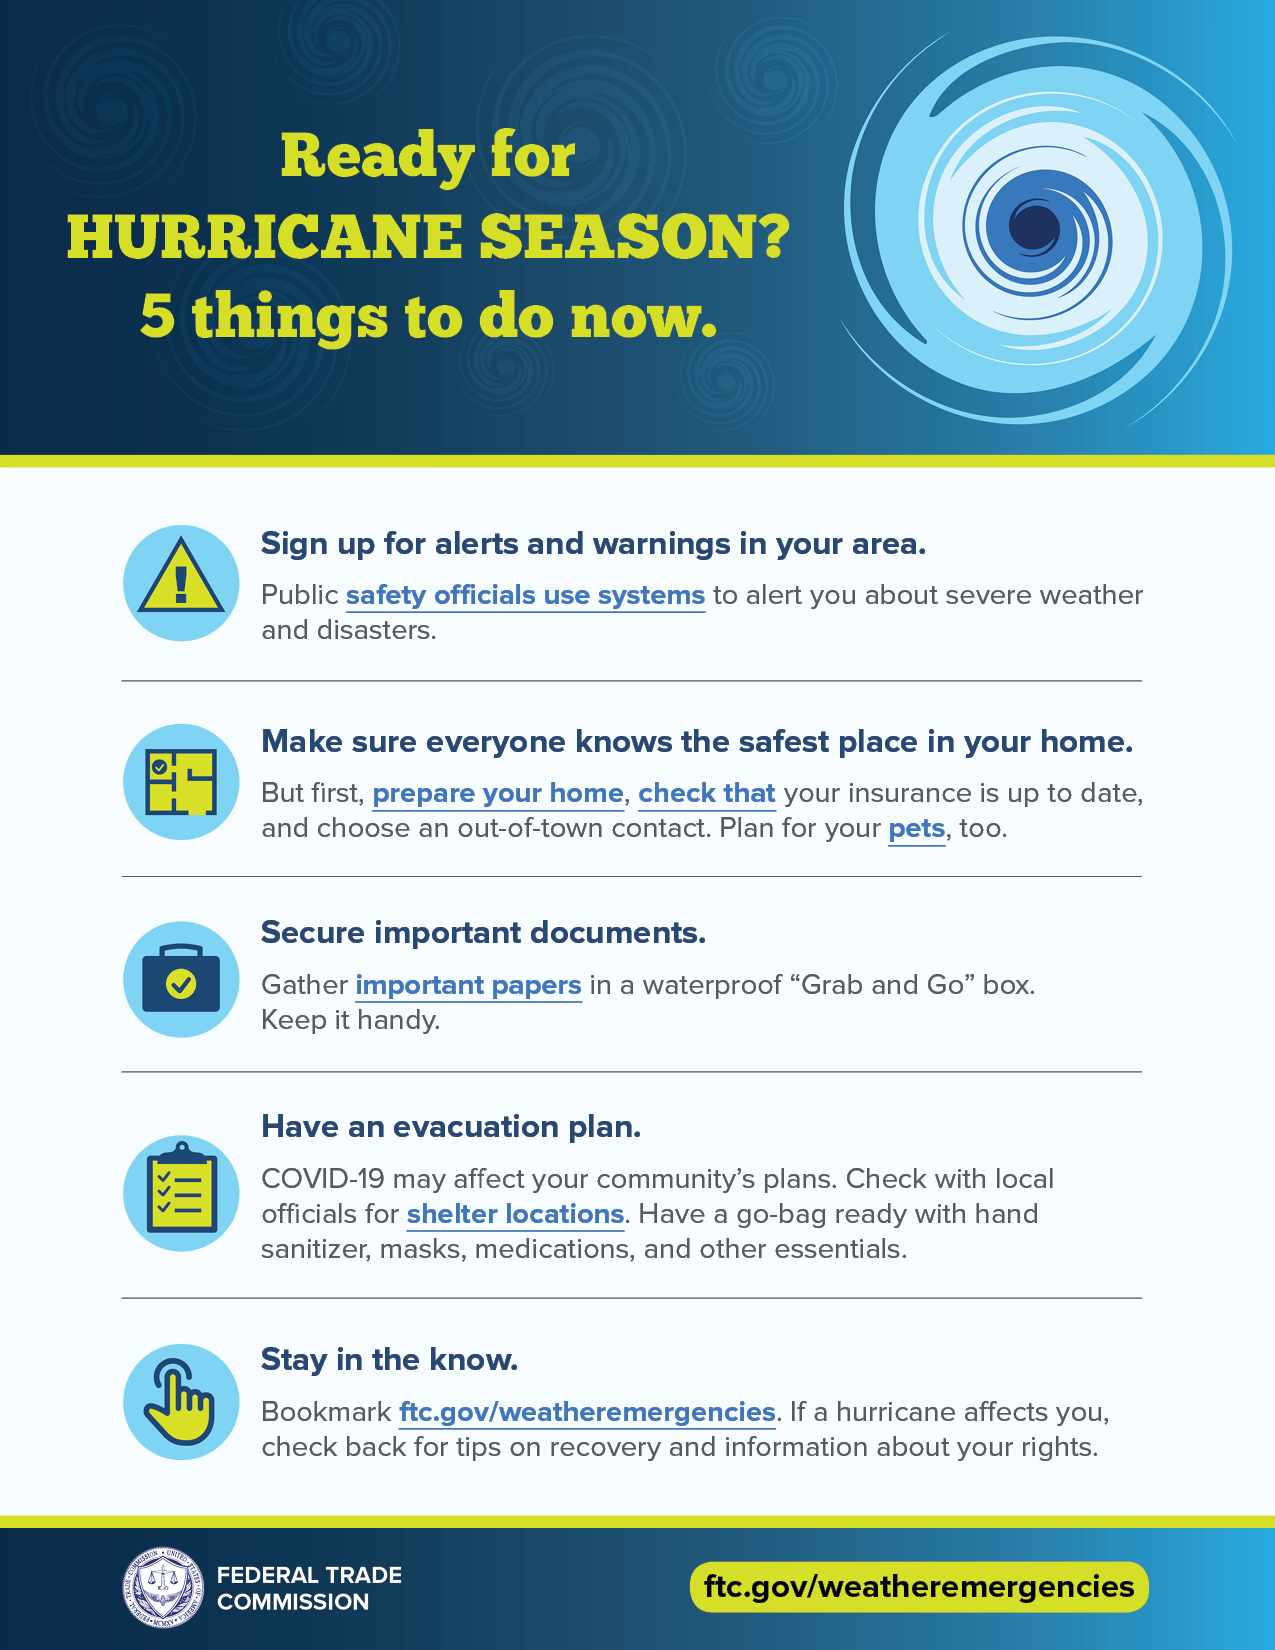 Ready for hurricane season? 5 things to do now.